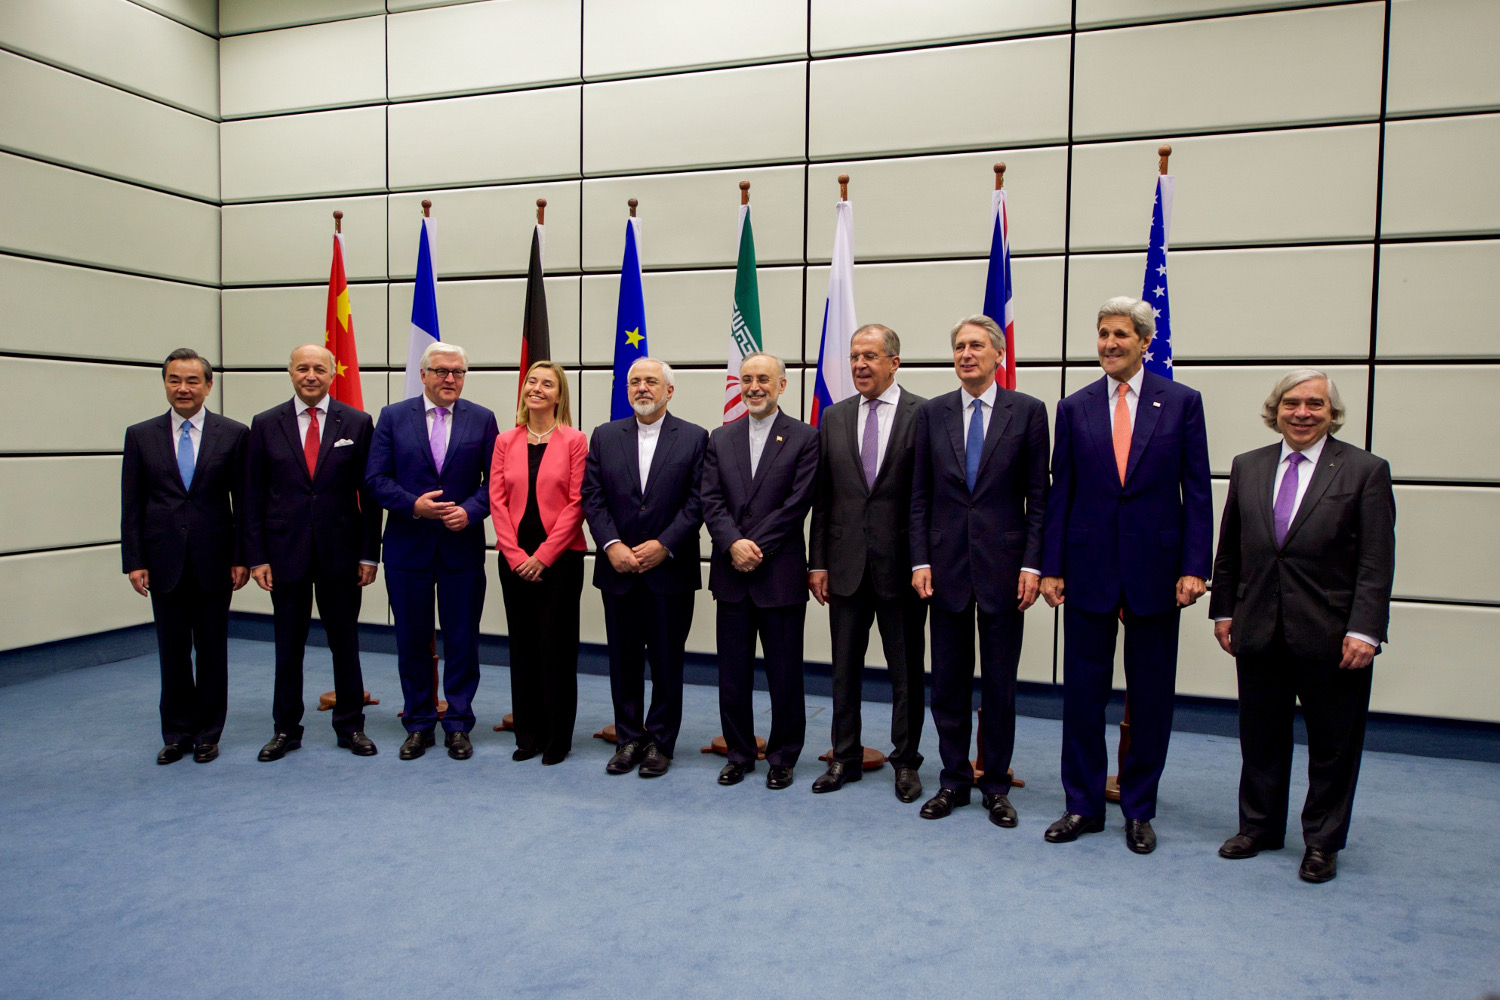 secretary_kerry_posed_for_a_group_photo_with_e-u-_p51_and_iranian_officials_before_final_plenary_of_iran_nuclear_negotiations_in_austria